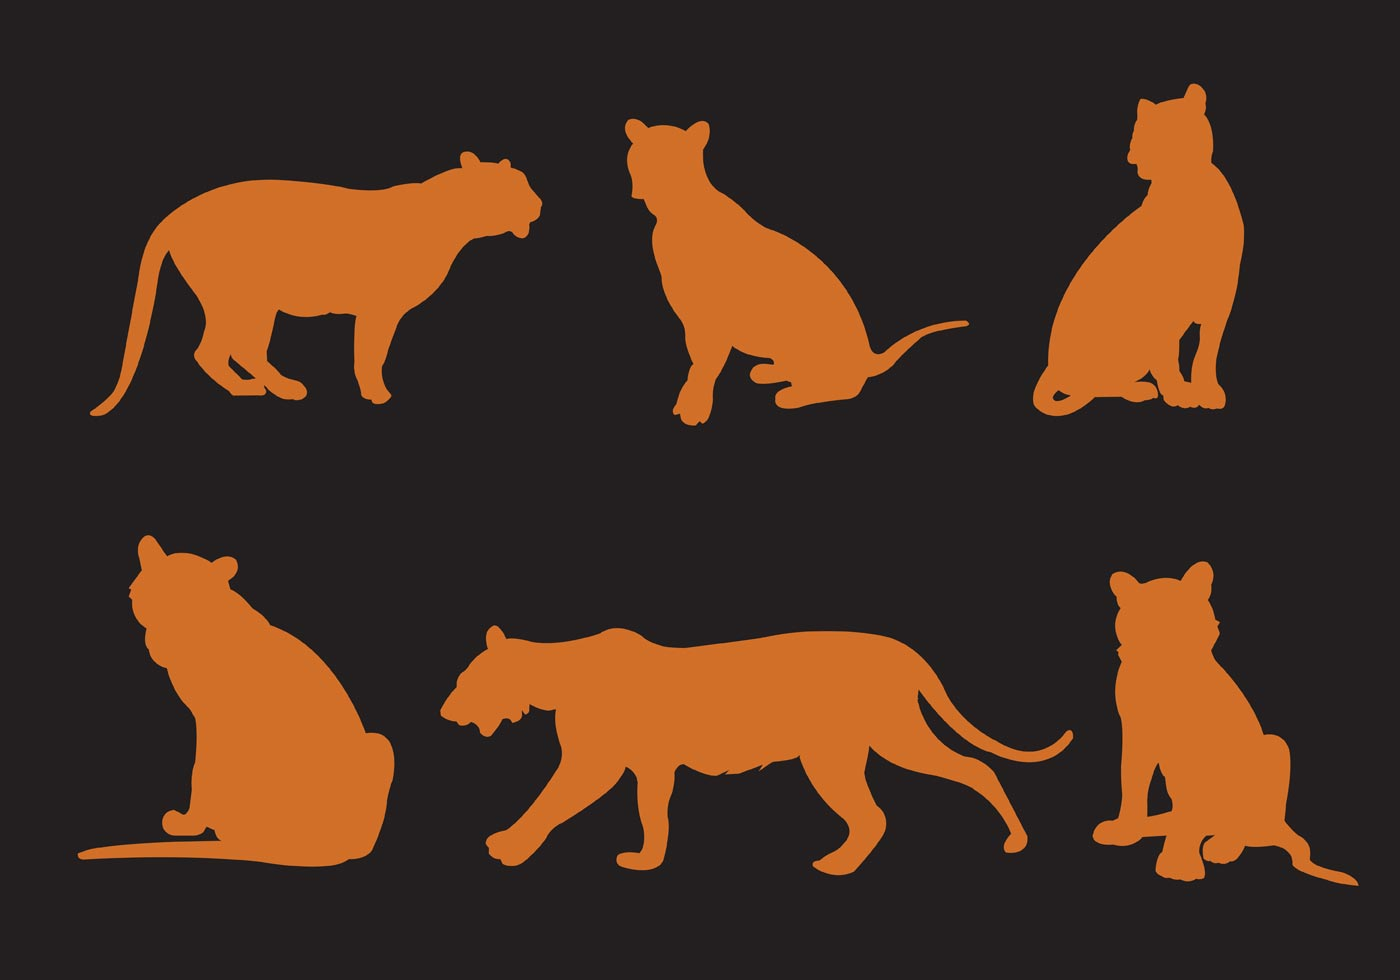 Vector Free Vectors -  of Silhouette Tigers Download